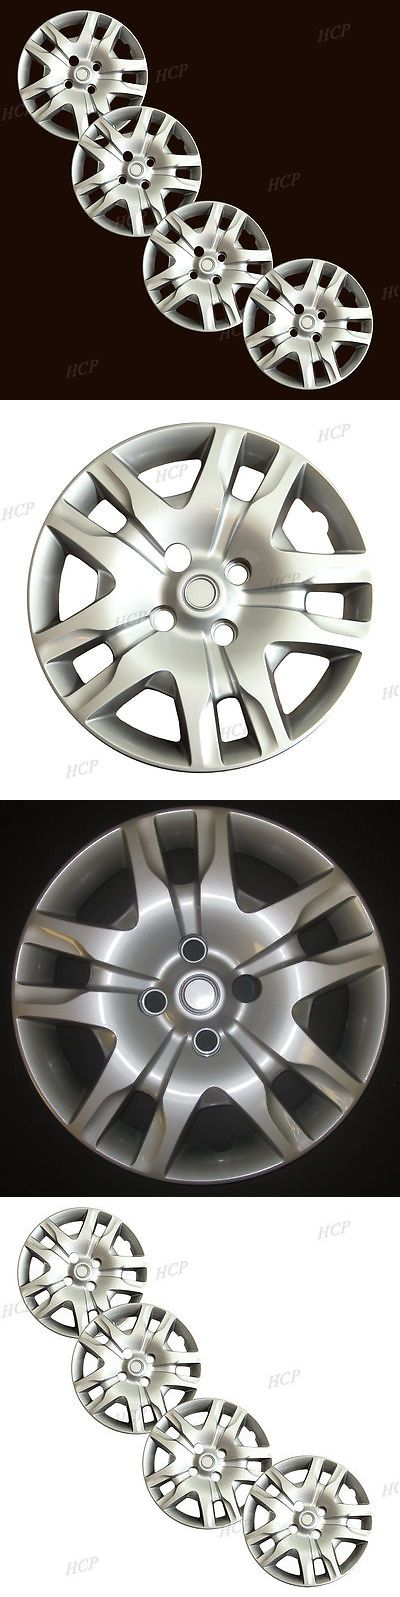 auto parts - general: New 16 Silver Hubcaps Wheel Rim Covers Fits 2007-2012 Nissan Sentra Set Of 4 -> BUY IT NOW ONLY: $44.8 on eBay!